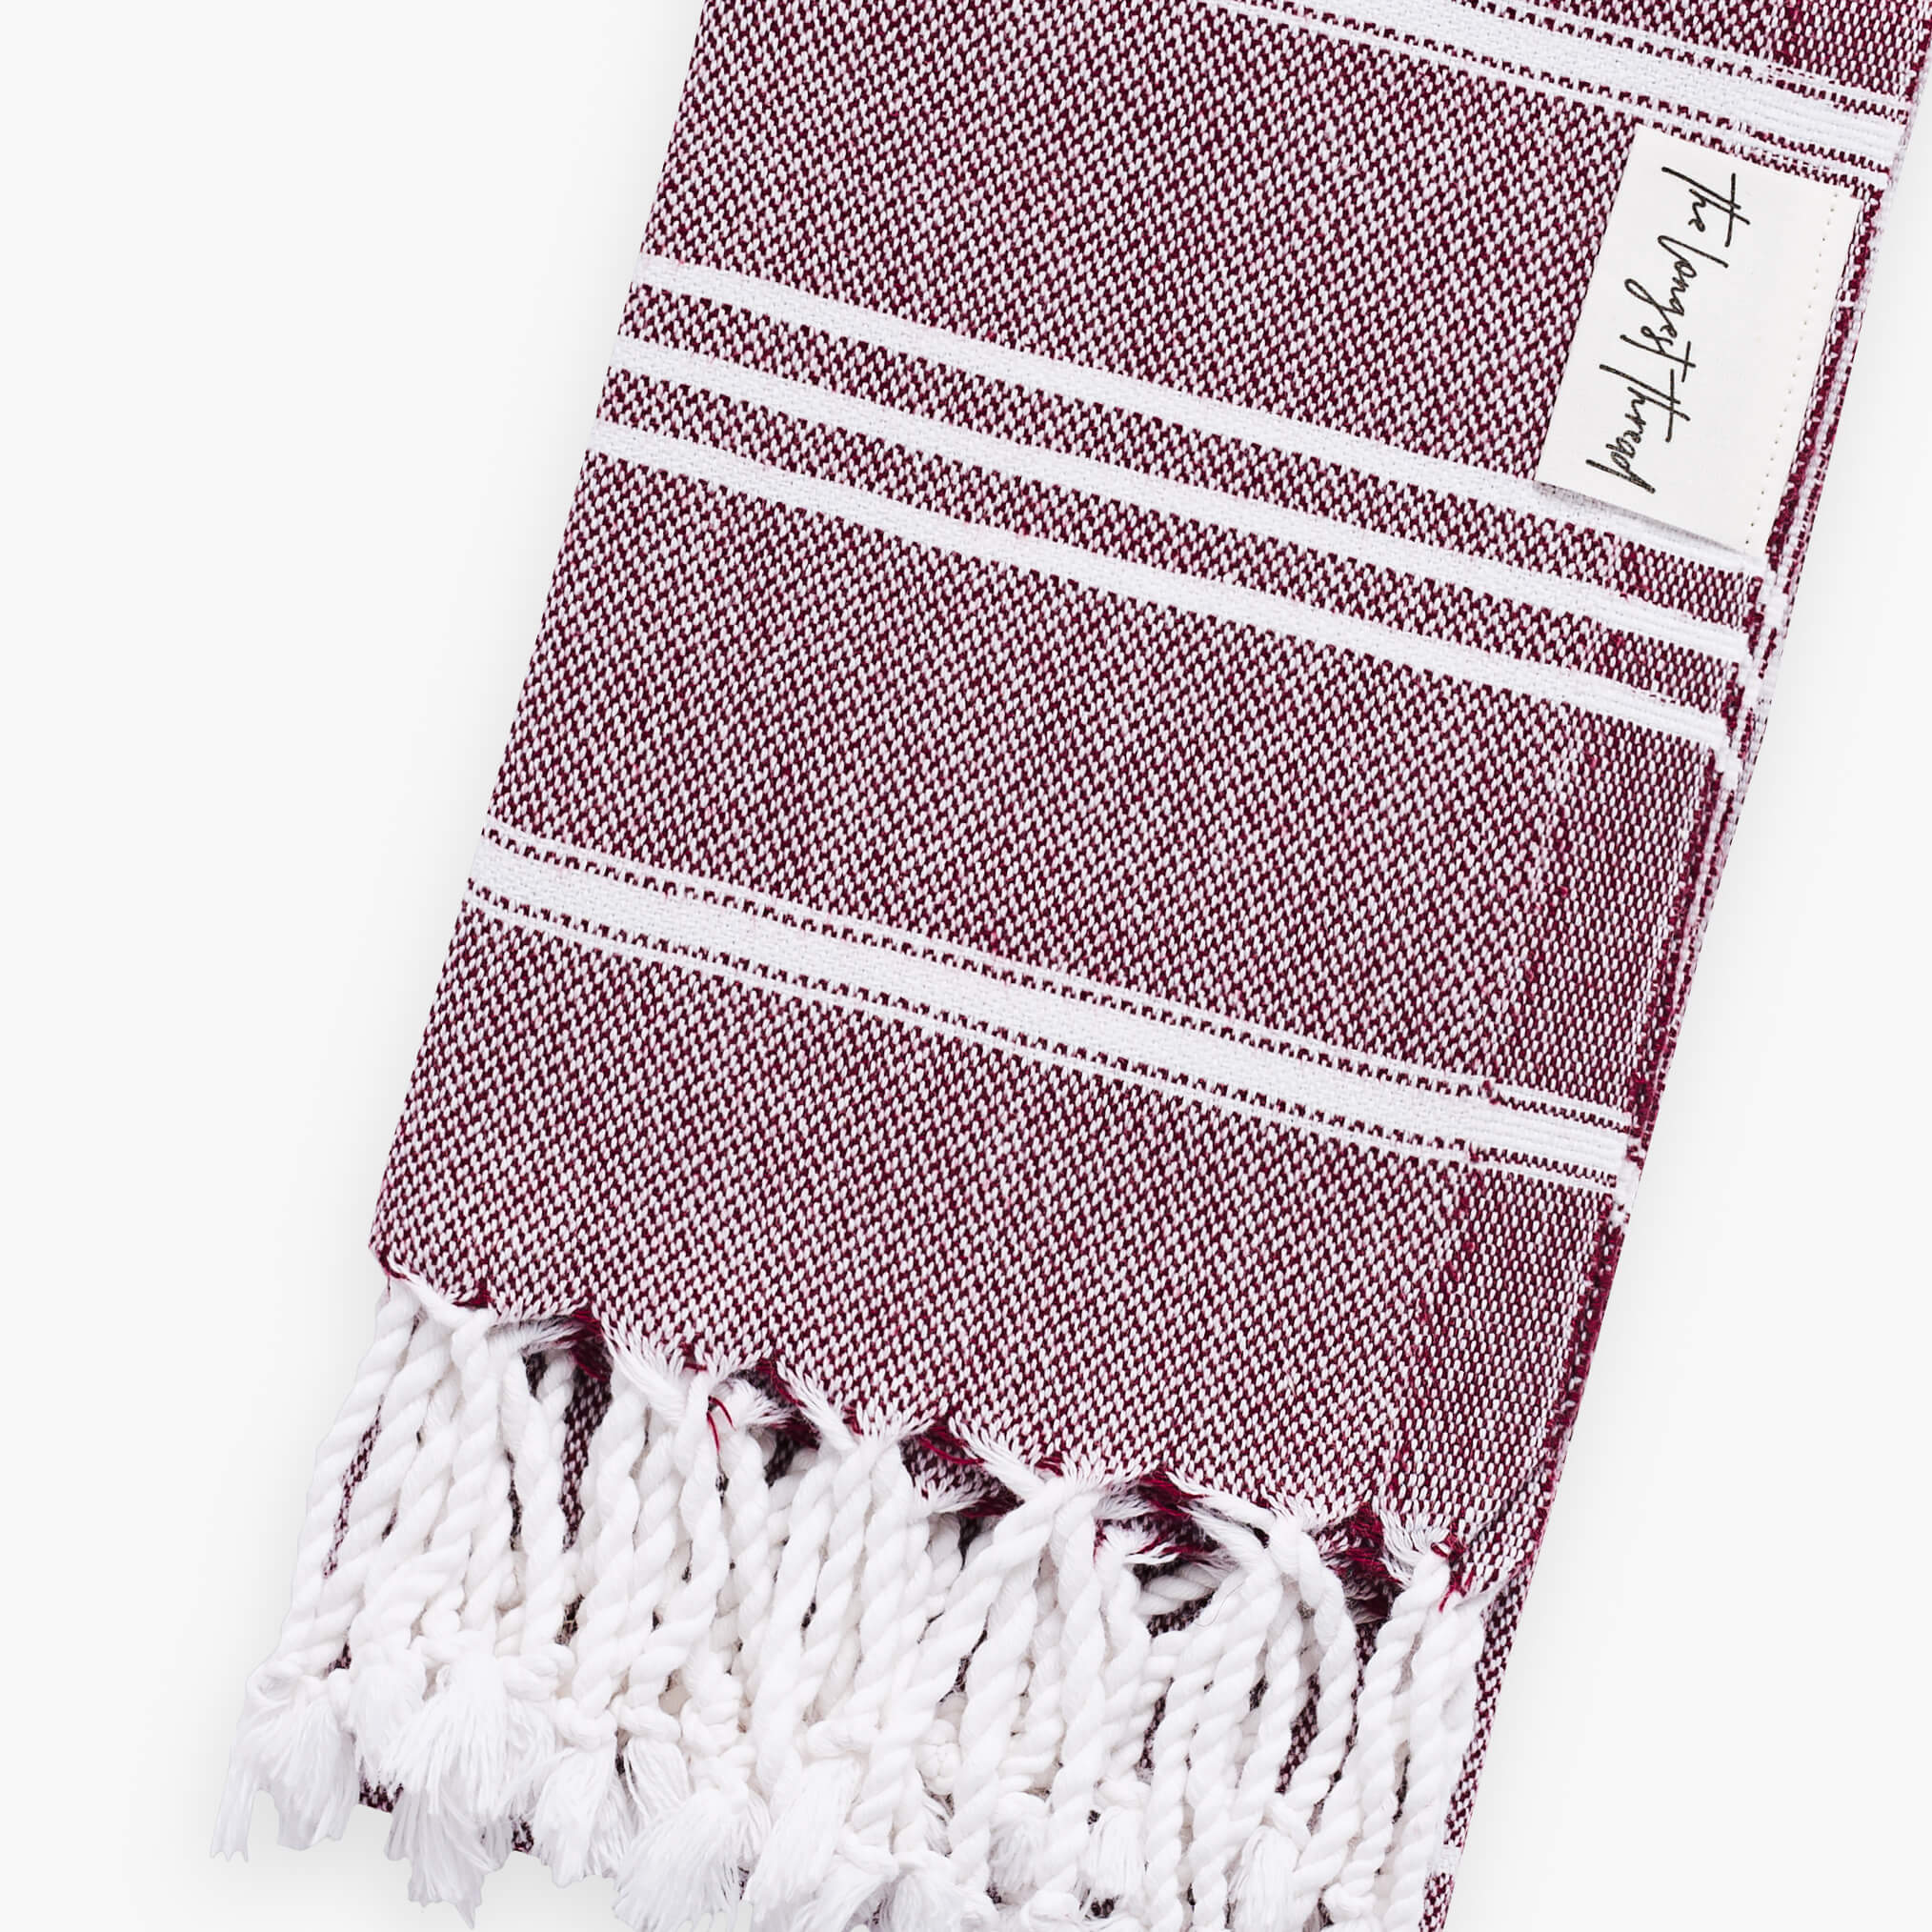 Basic Burgundy Turkish Hand Towel Image 2